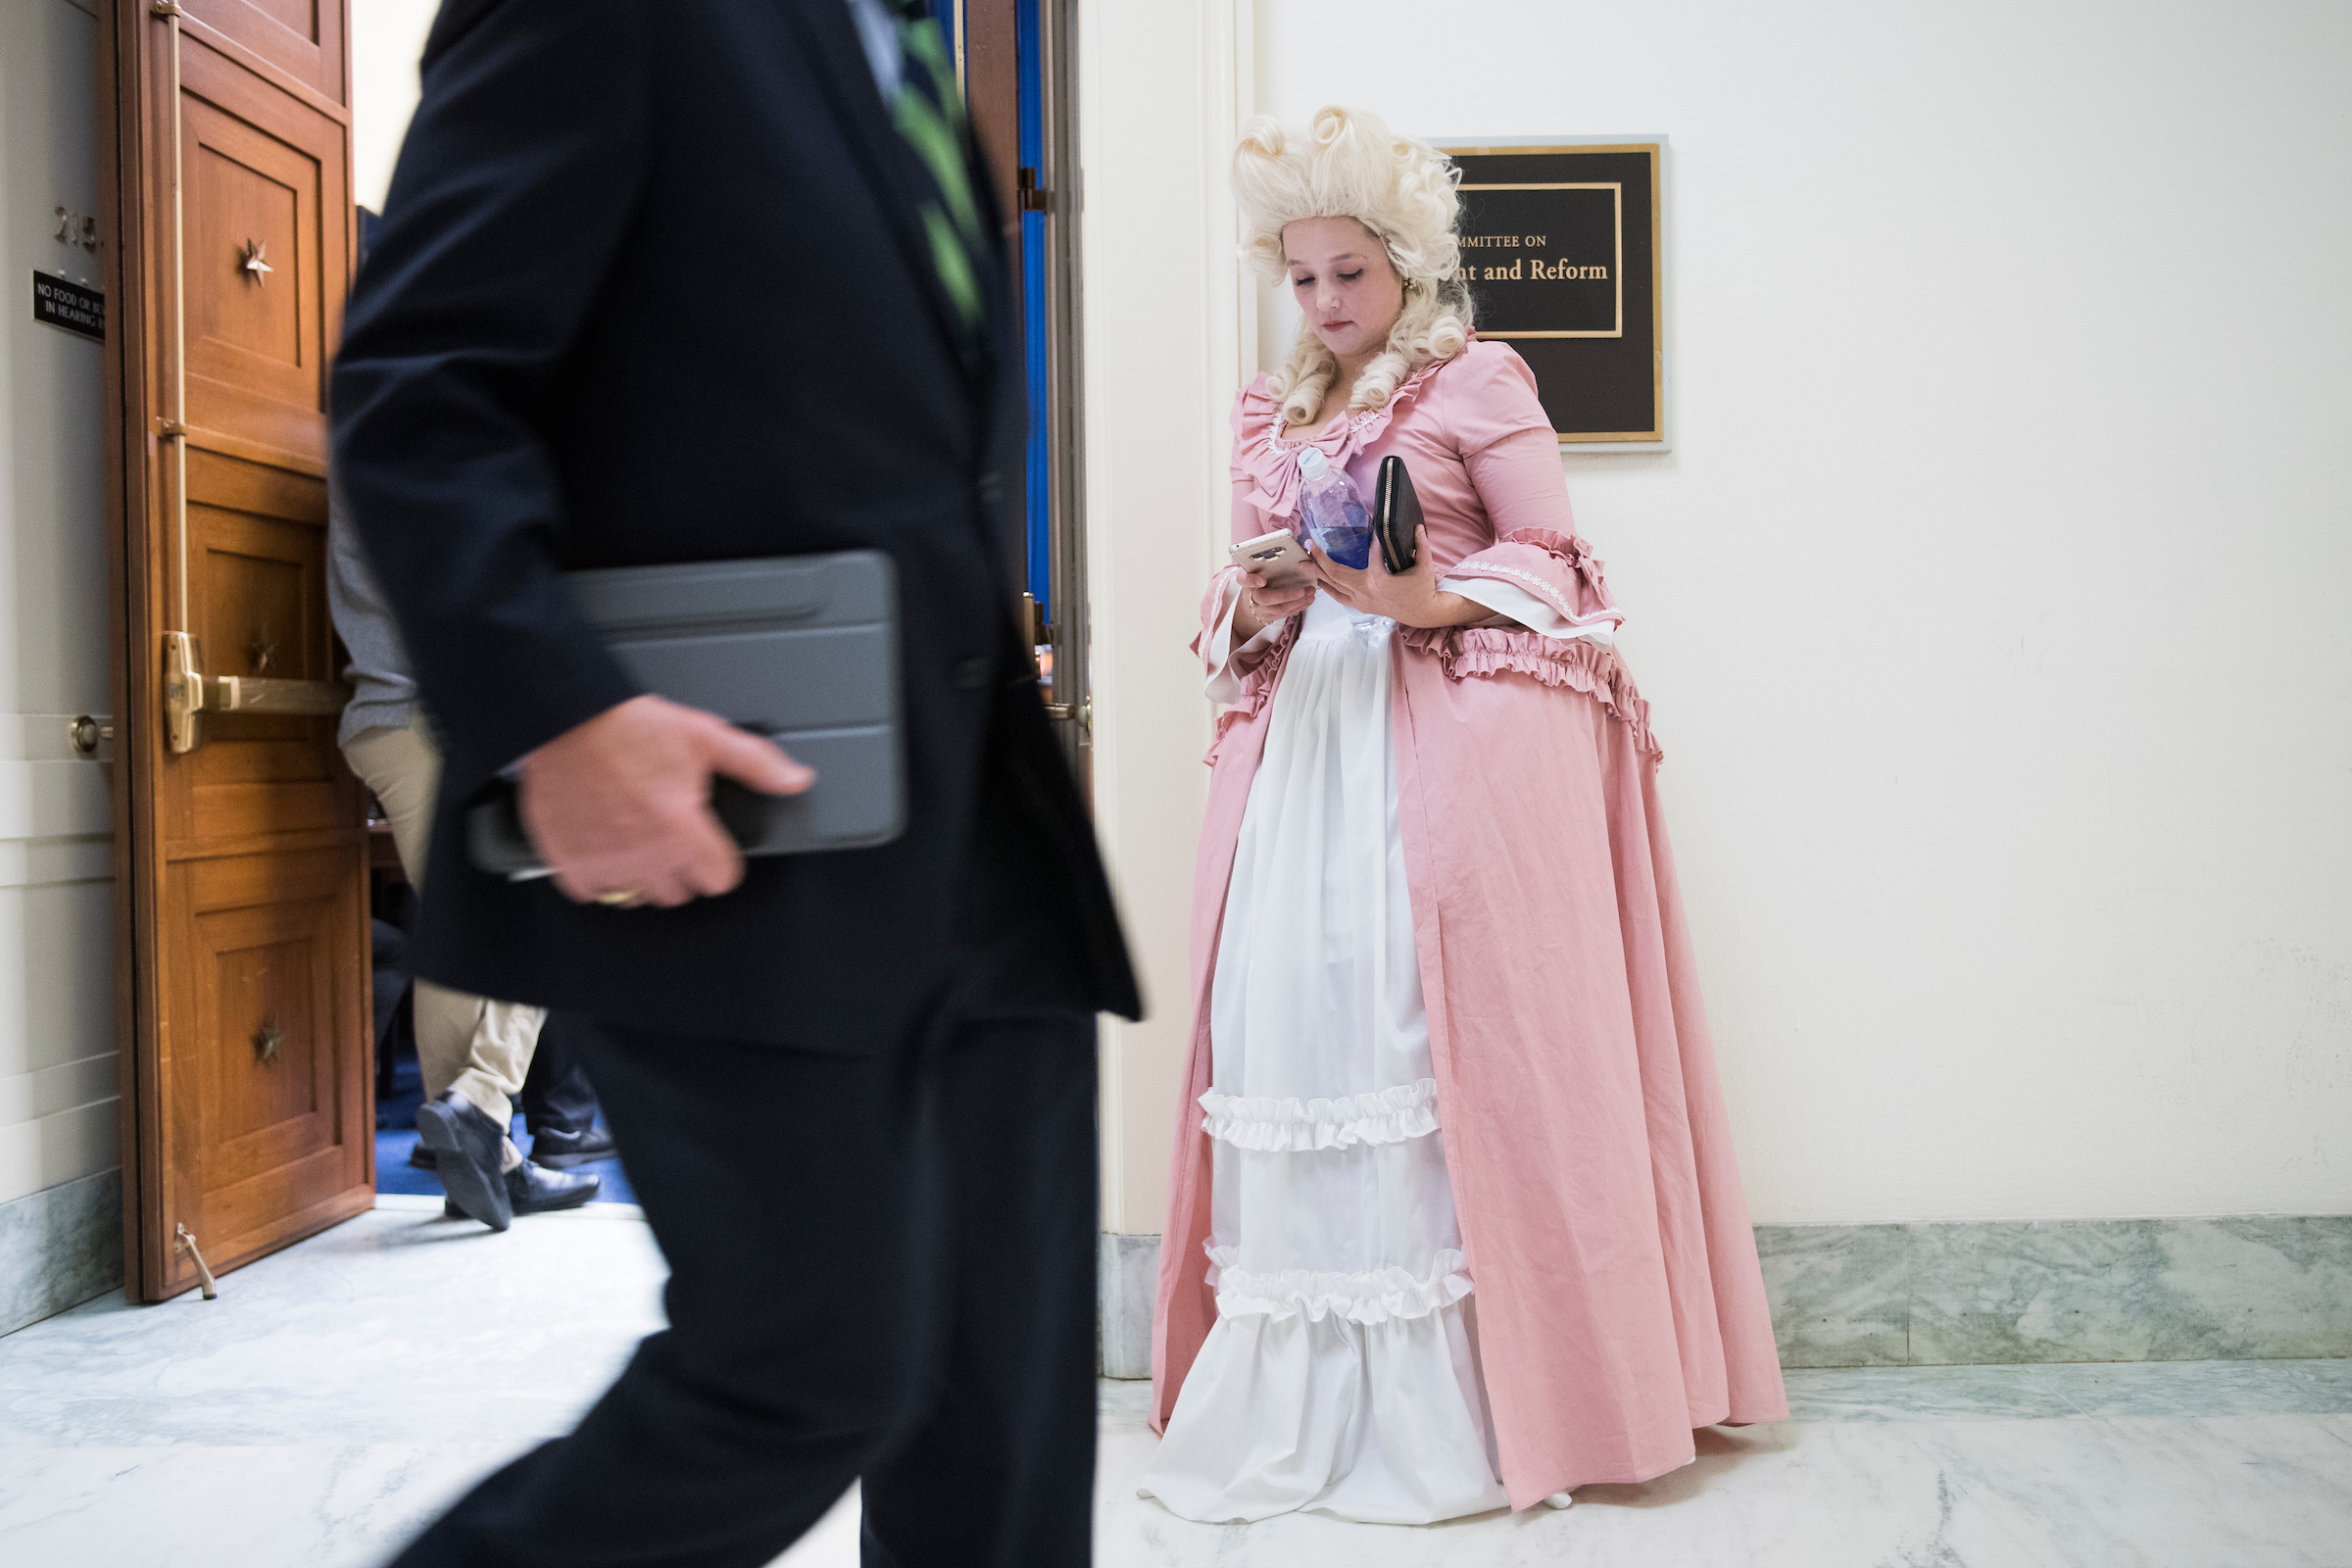 UNITED STATES - MARCH 14: Lauren Windsor of American Family Voices, dressed as Marie Antoinette, is seen outside a House Oversight and Reform Committee hearing in Rayburn Building where Commerce Secretary Wilbur Ross testified on preparations for the 2020 Census and citizenship questions on Thursday March 14, 2019. She dressed as Antoinette to highlight Ross's wealth. (Photo By Tom Williams/CQ Roll Call)